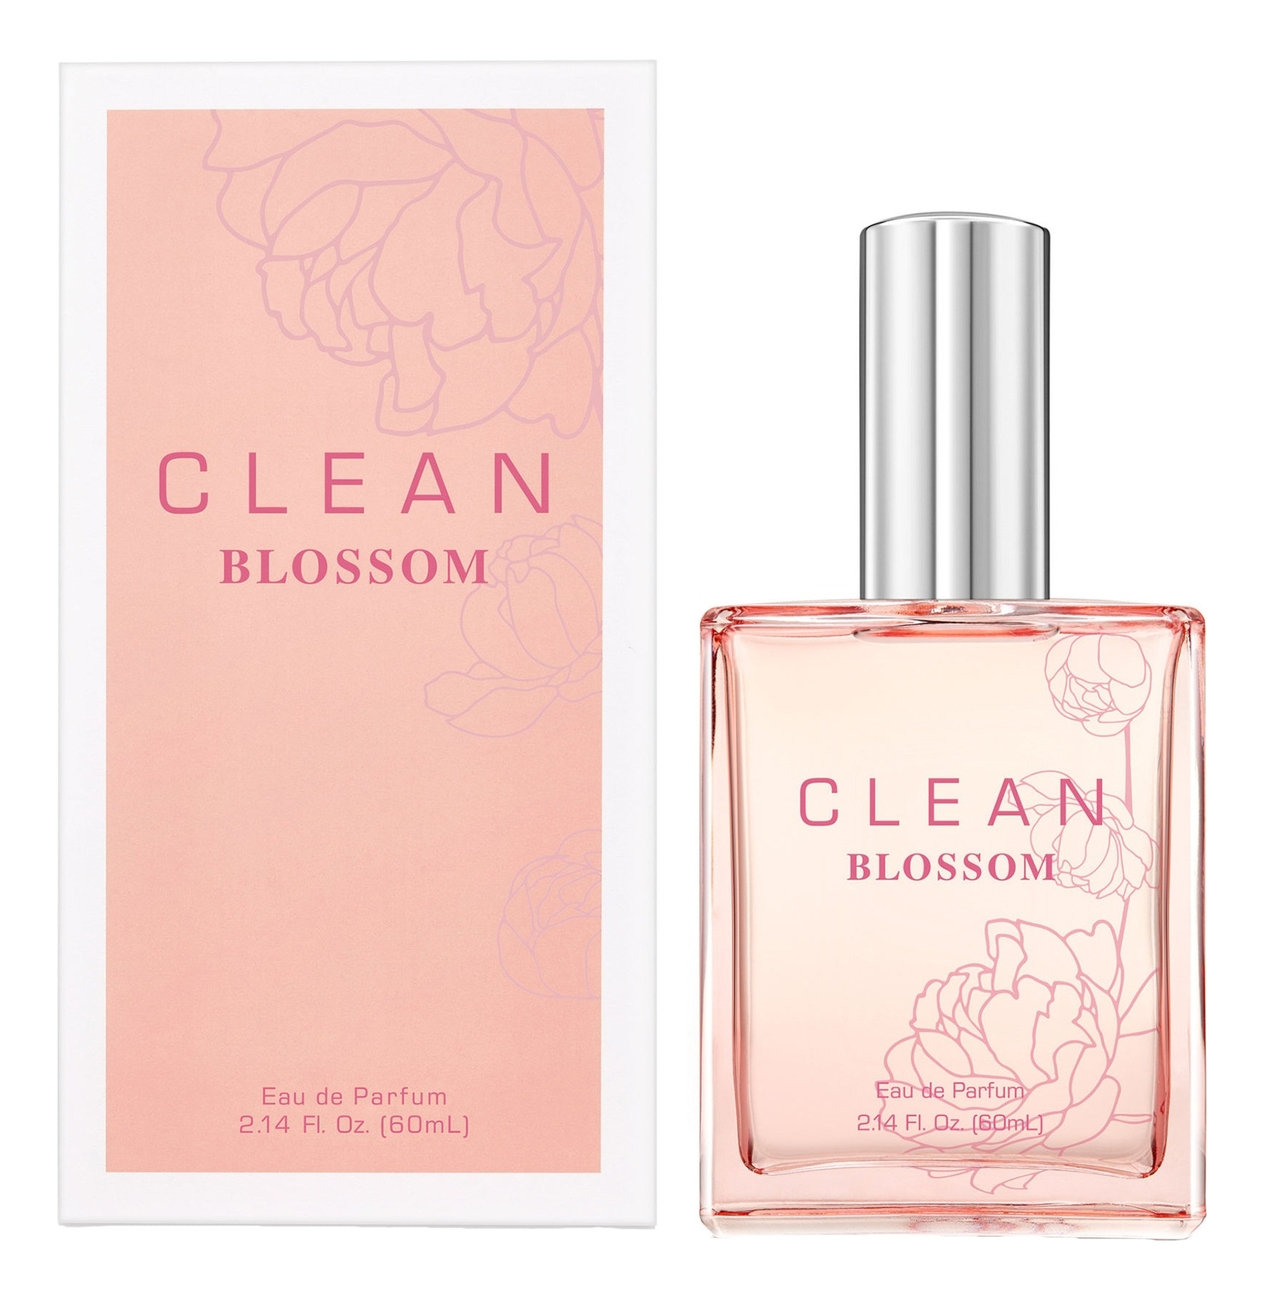 Clean Blossom: парфюмерная вода 60мл burberry body парфюмерная вода 60мл